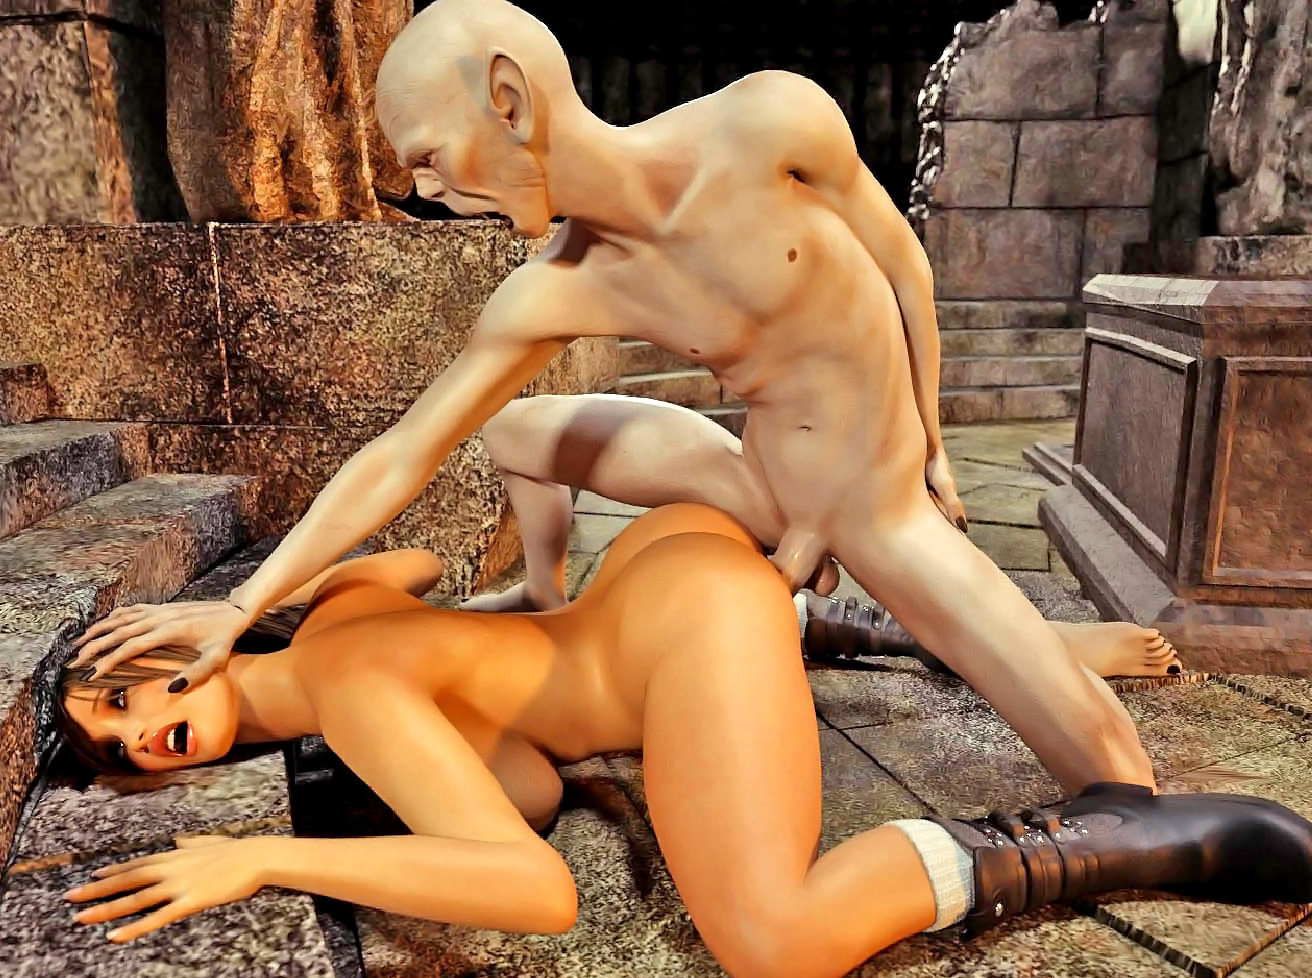 Tomb raider monsters porn nude pic